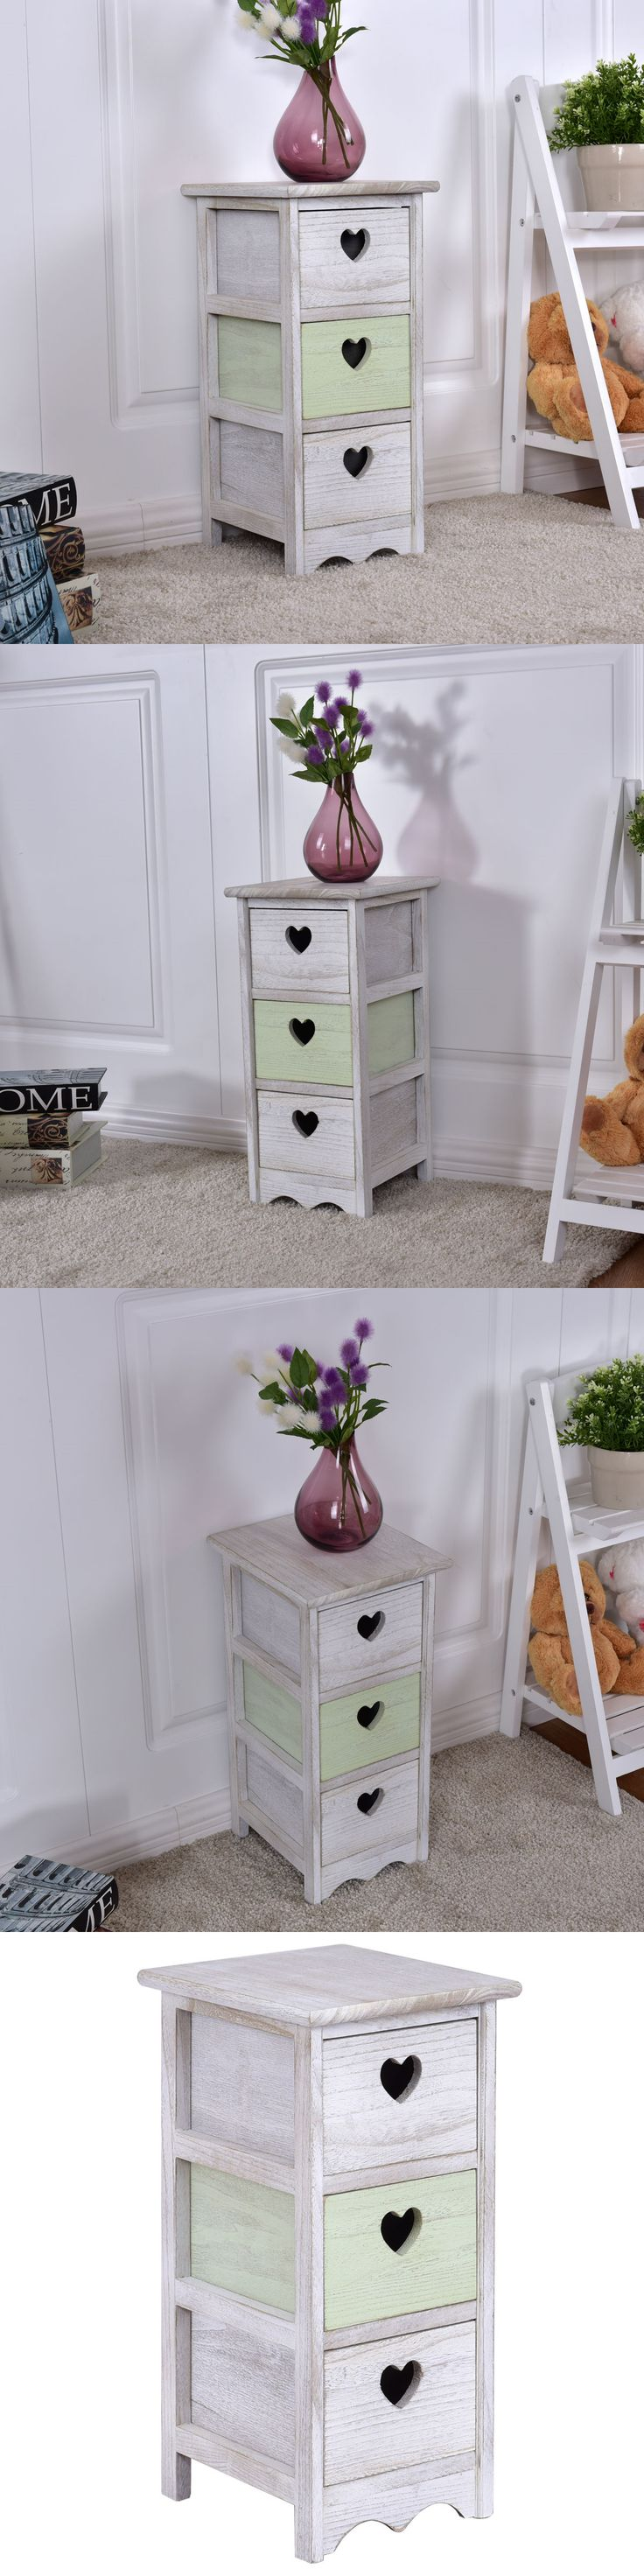 Nightstands 38199: Wooden Bedside Table Nightstand Cabinet Bedroom Furniture W 3 Storage Drawer -> BUY IT NOW ONLY: $32.95 on eBay!